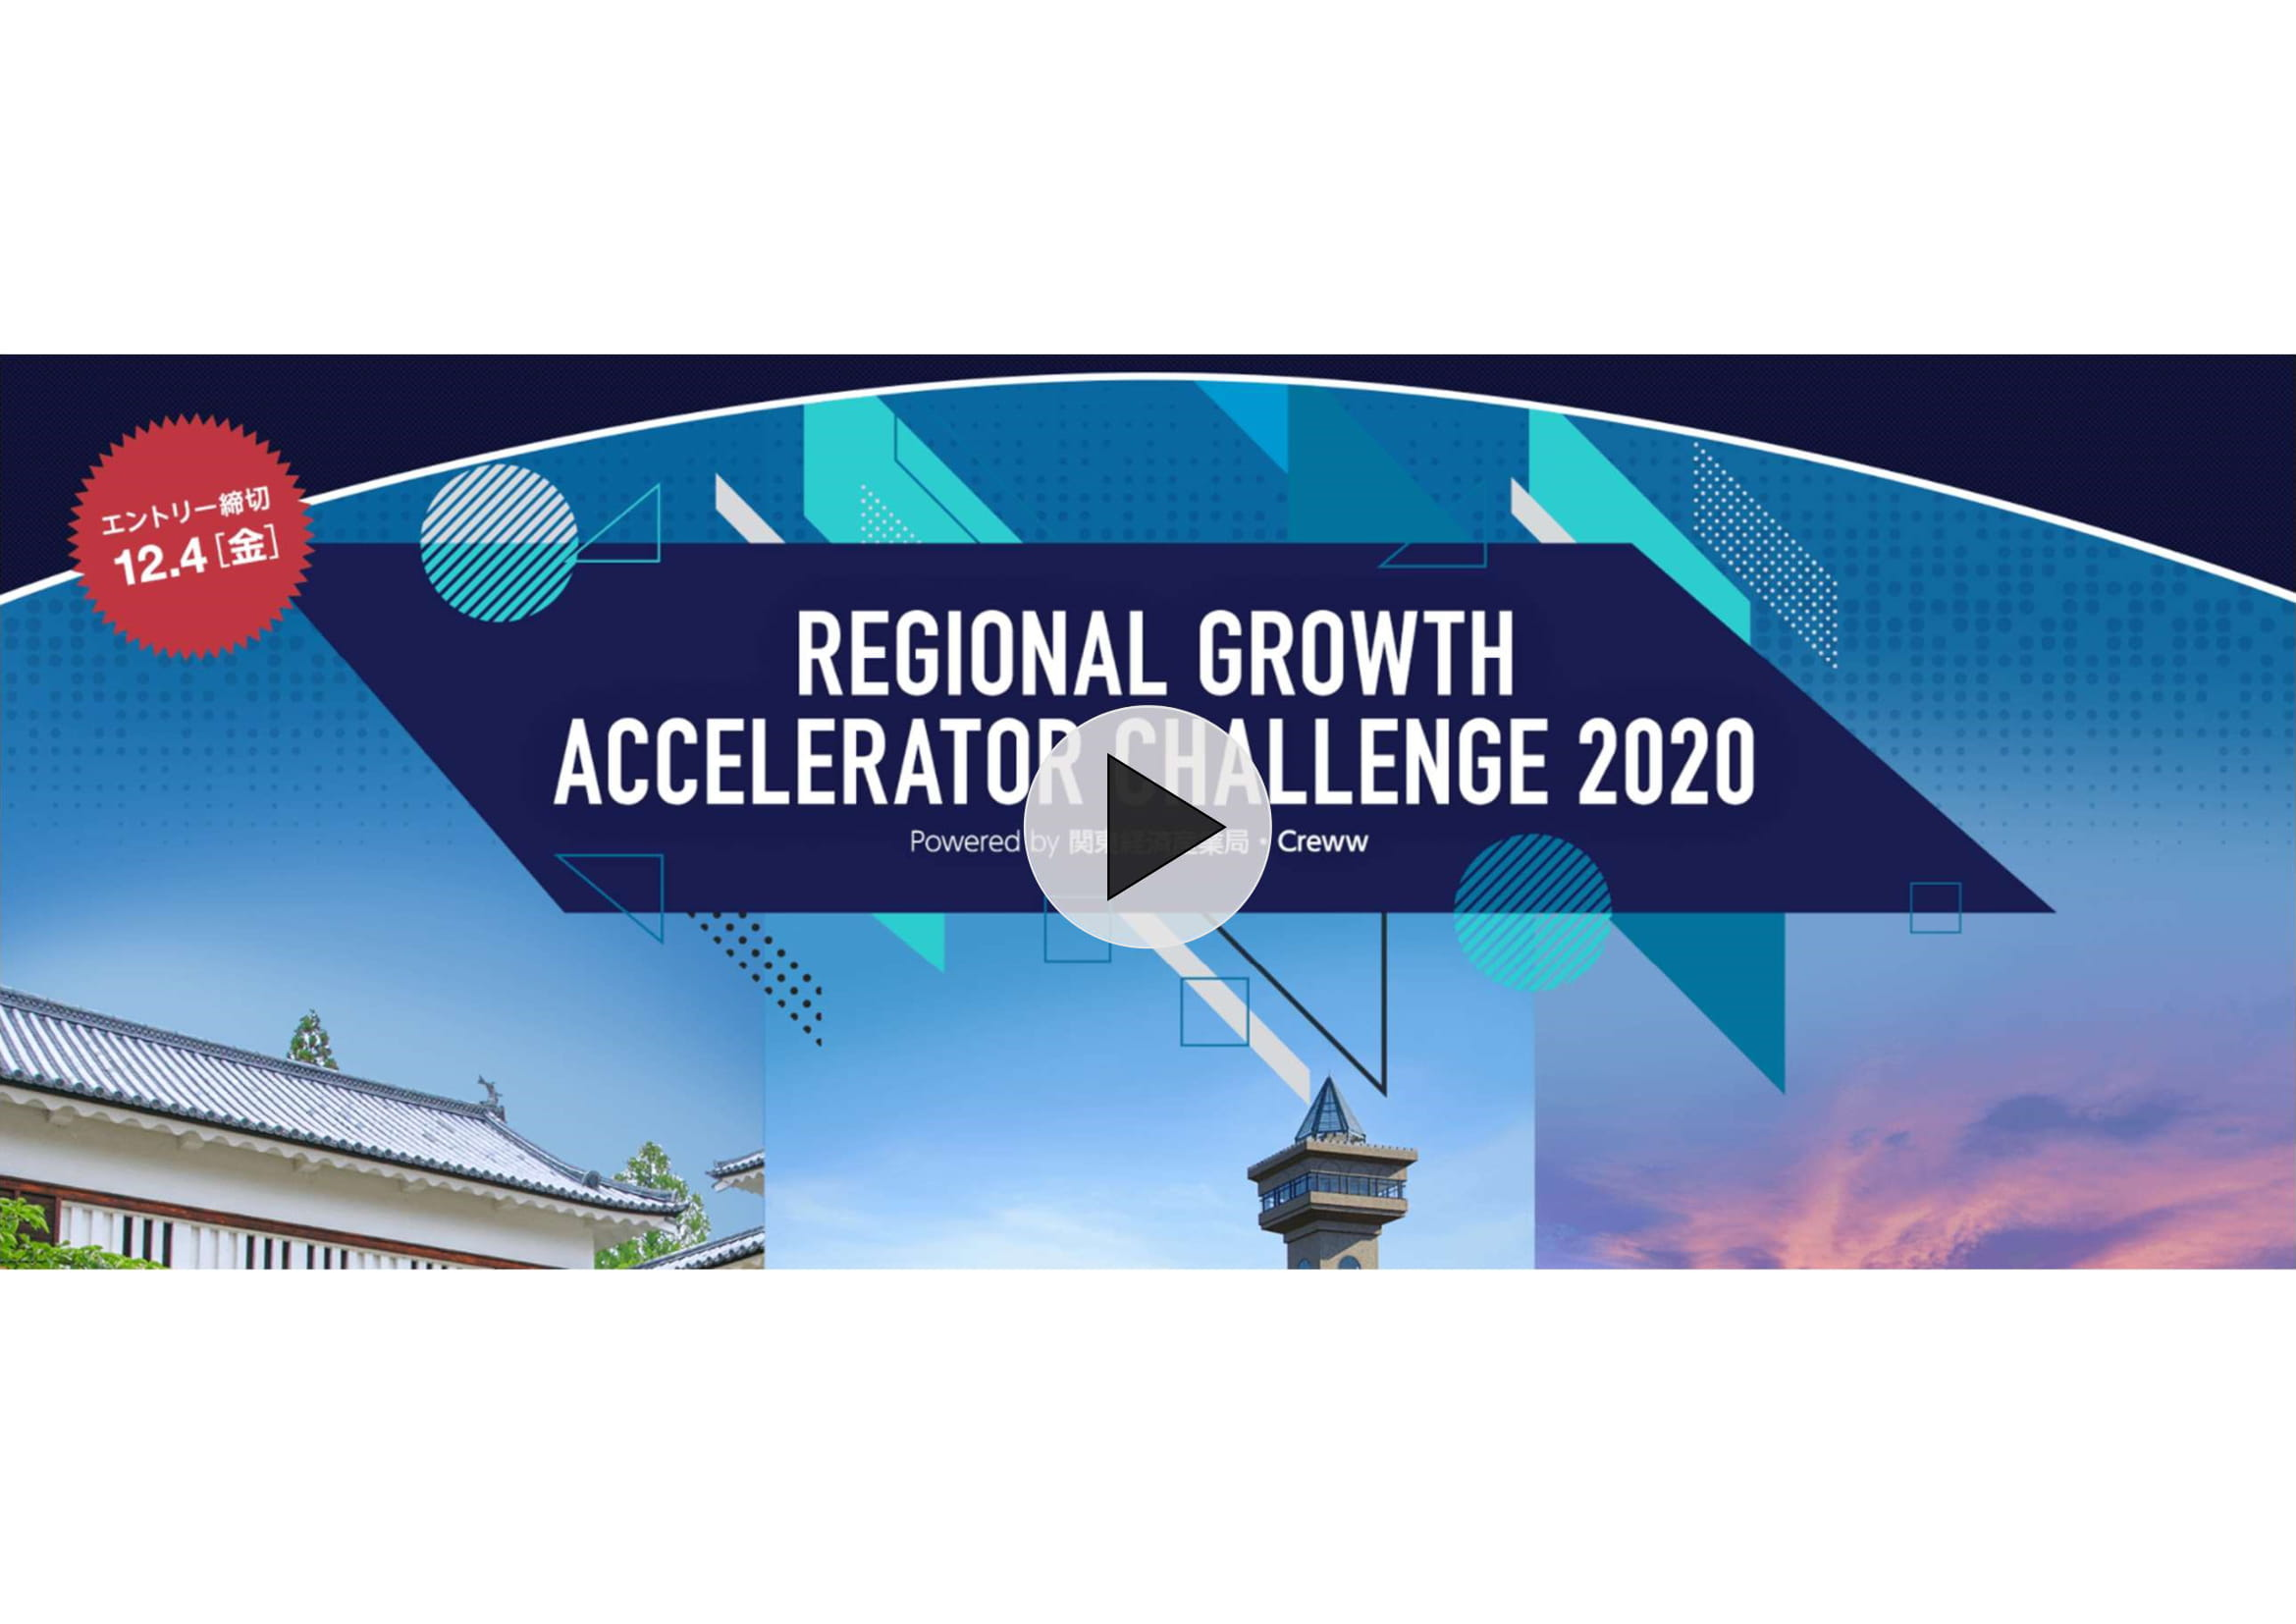 REGIONAL GROWTH ACCELERATOR CHALLENGE 2020